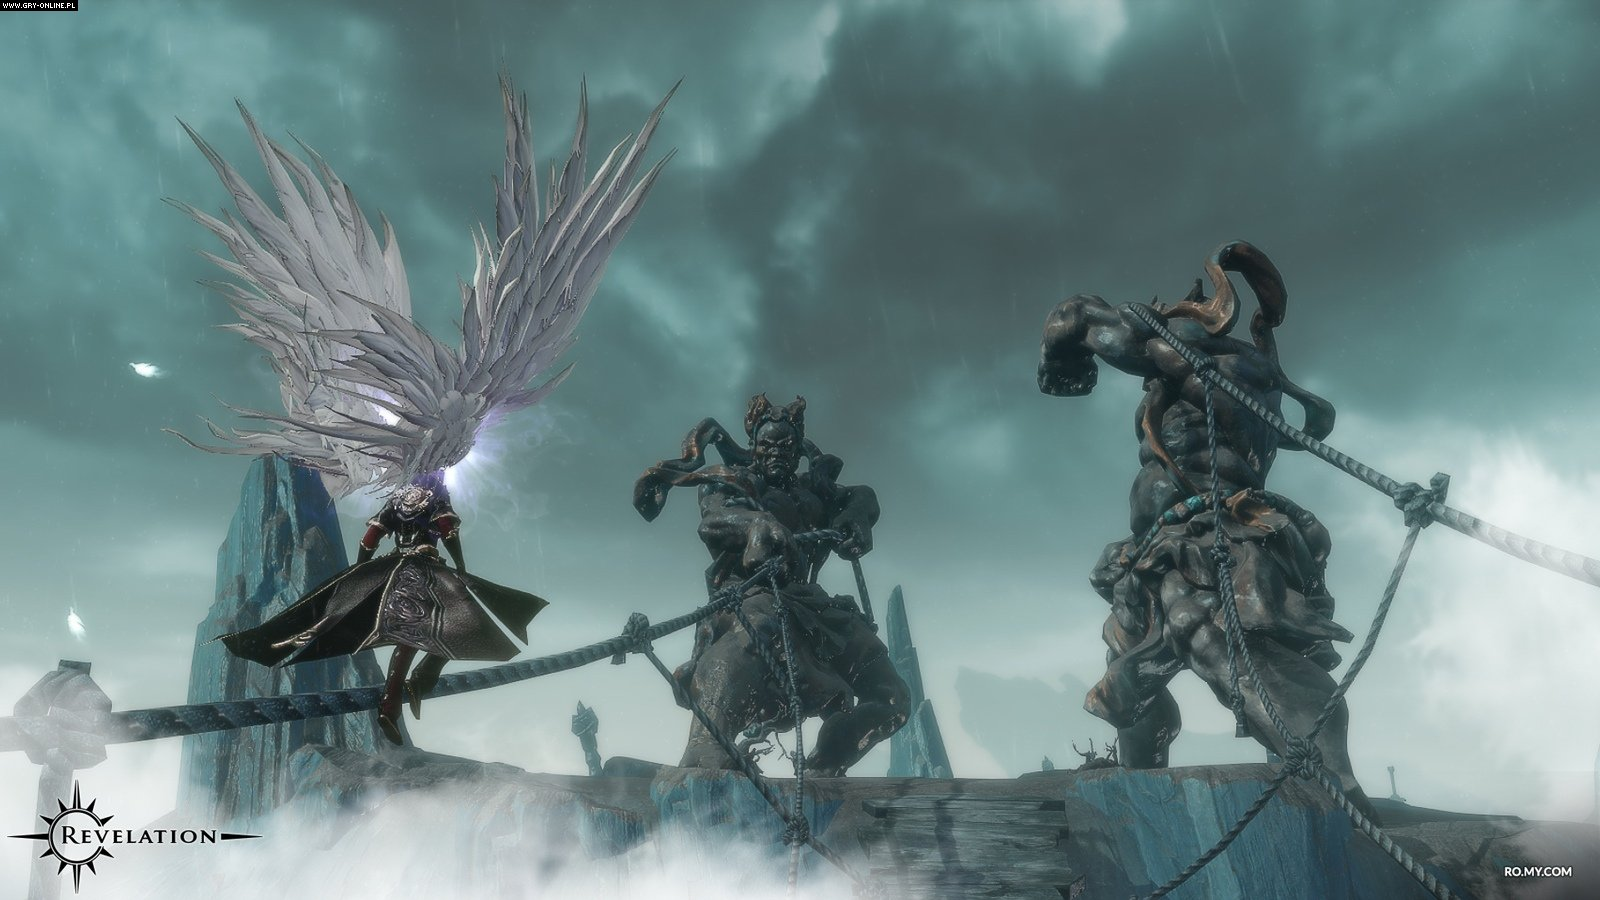 Revelation Online PC Gry Screen 4/10, NetEase, My.com